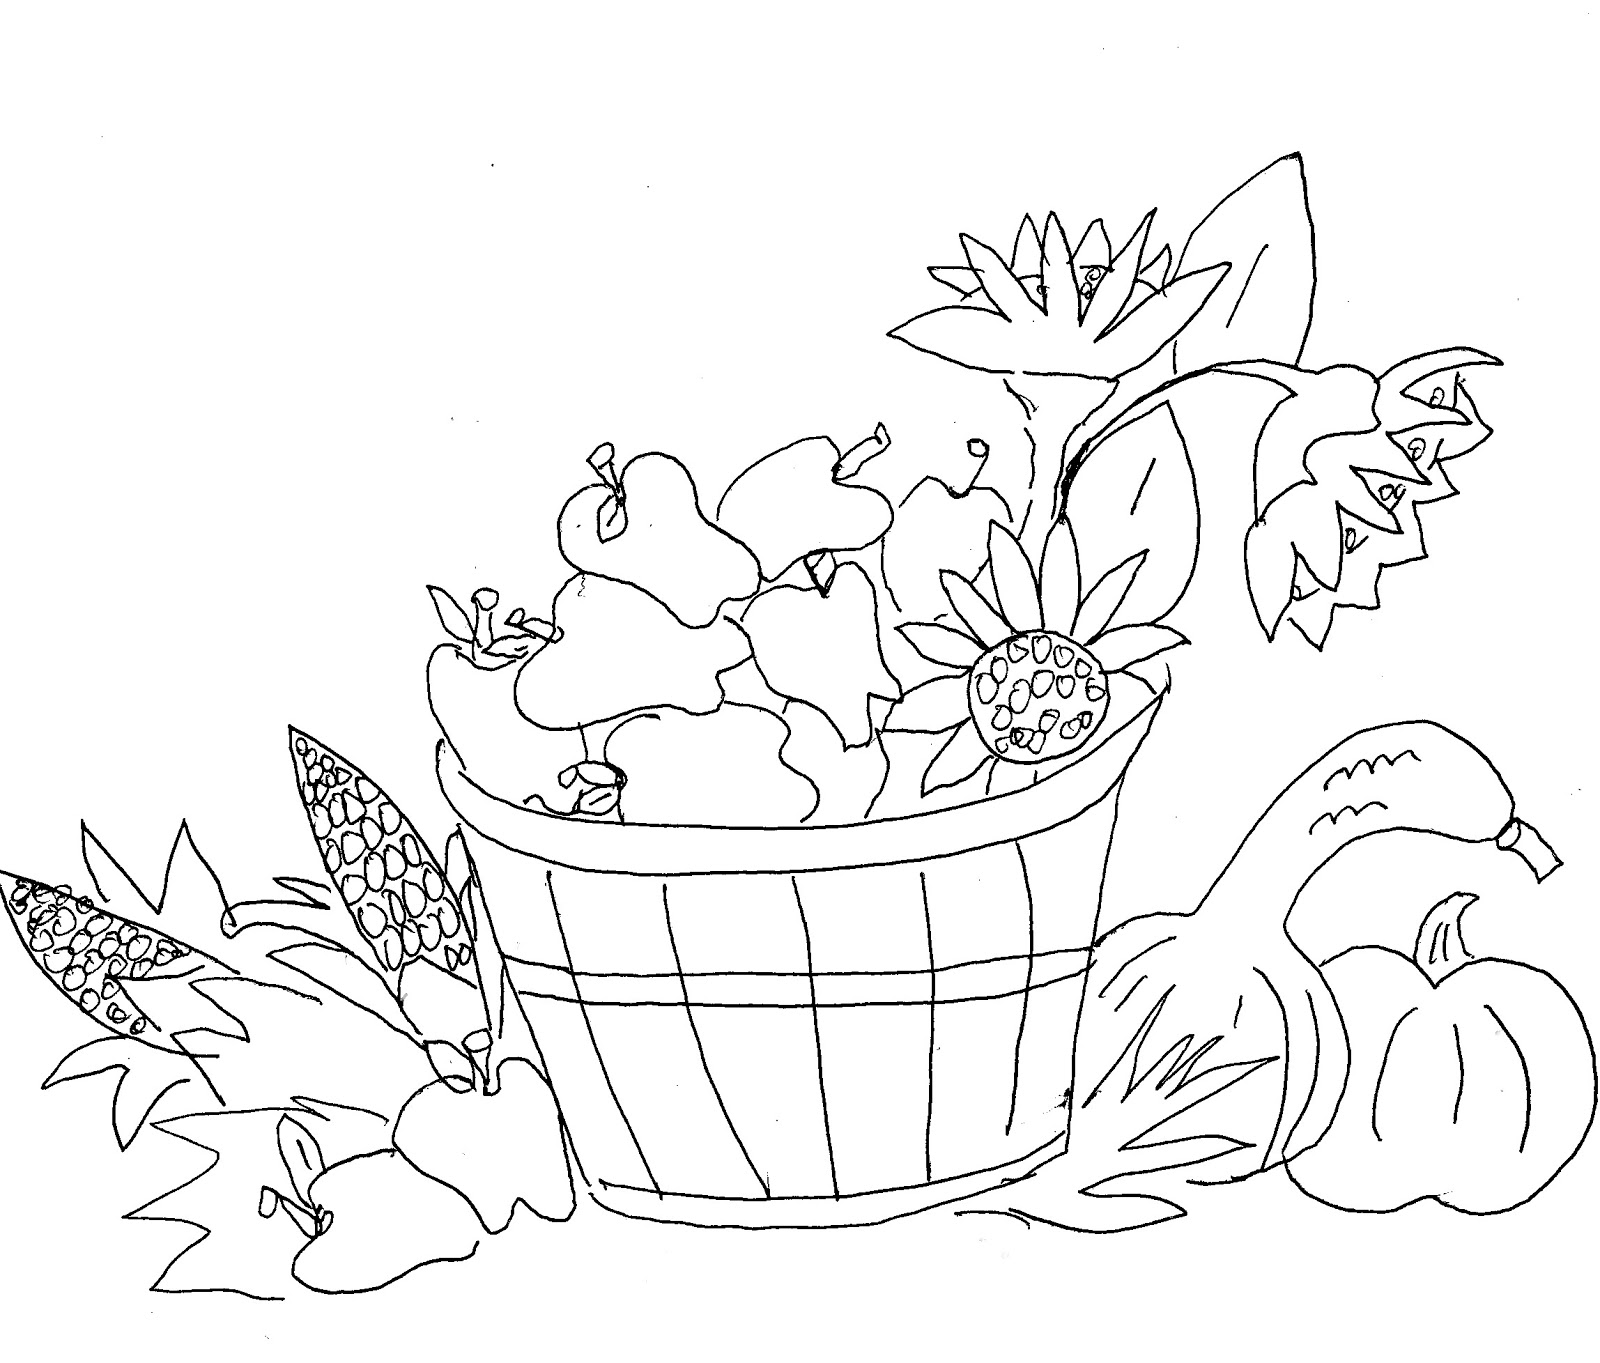 harvest coloring pages - christian images in my treasure box squirrels and leaves